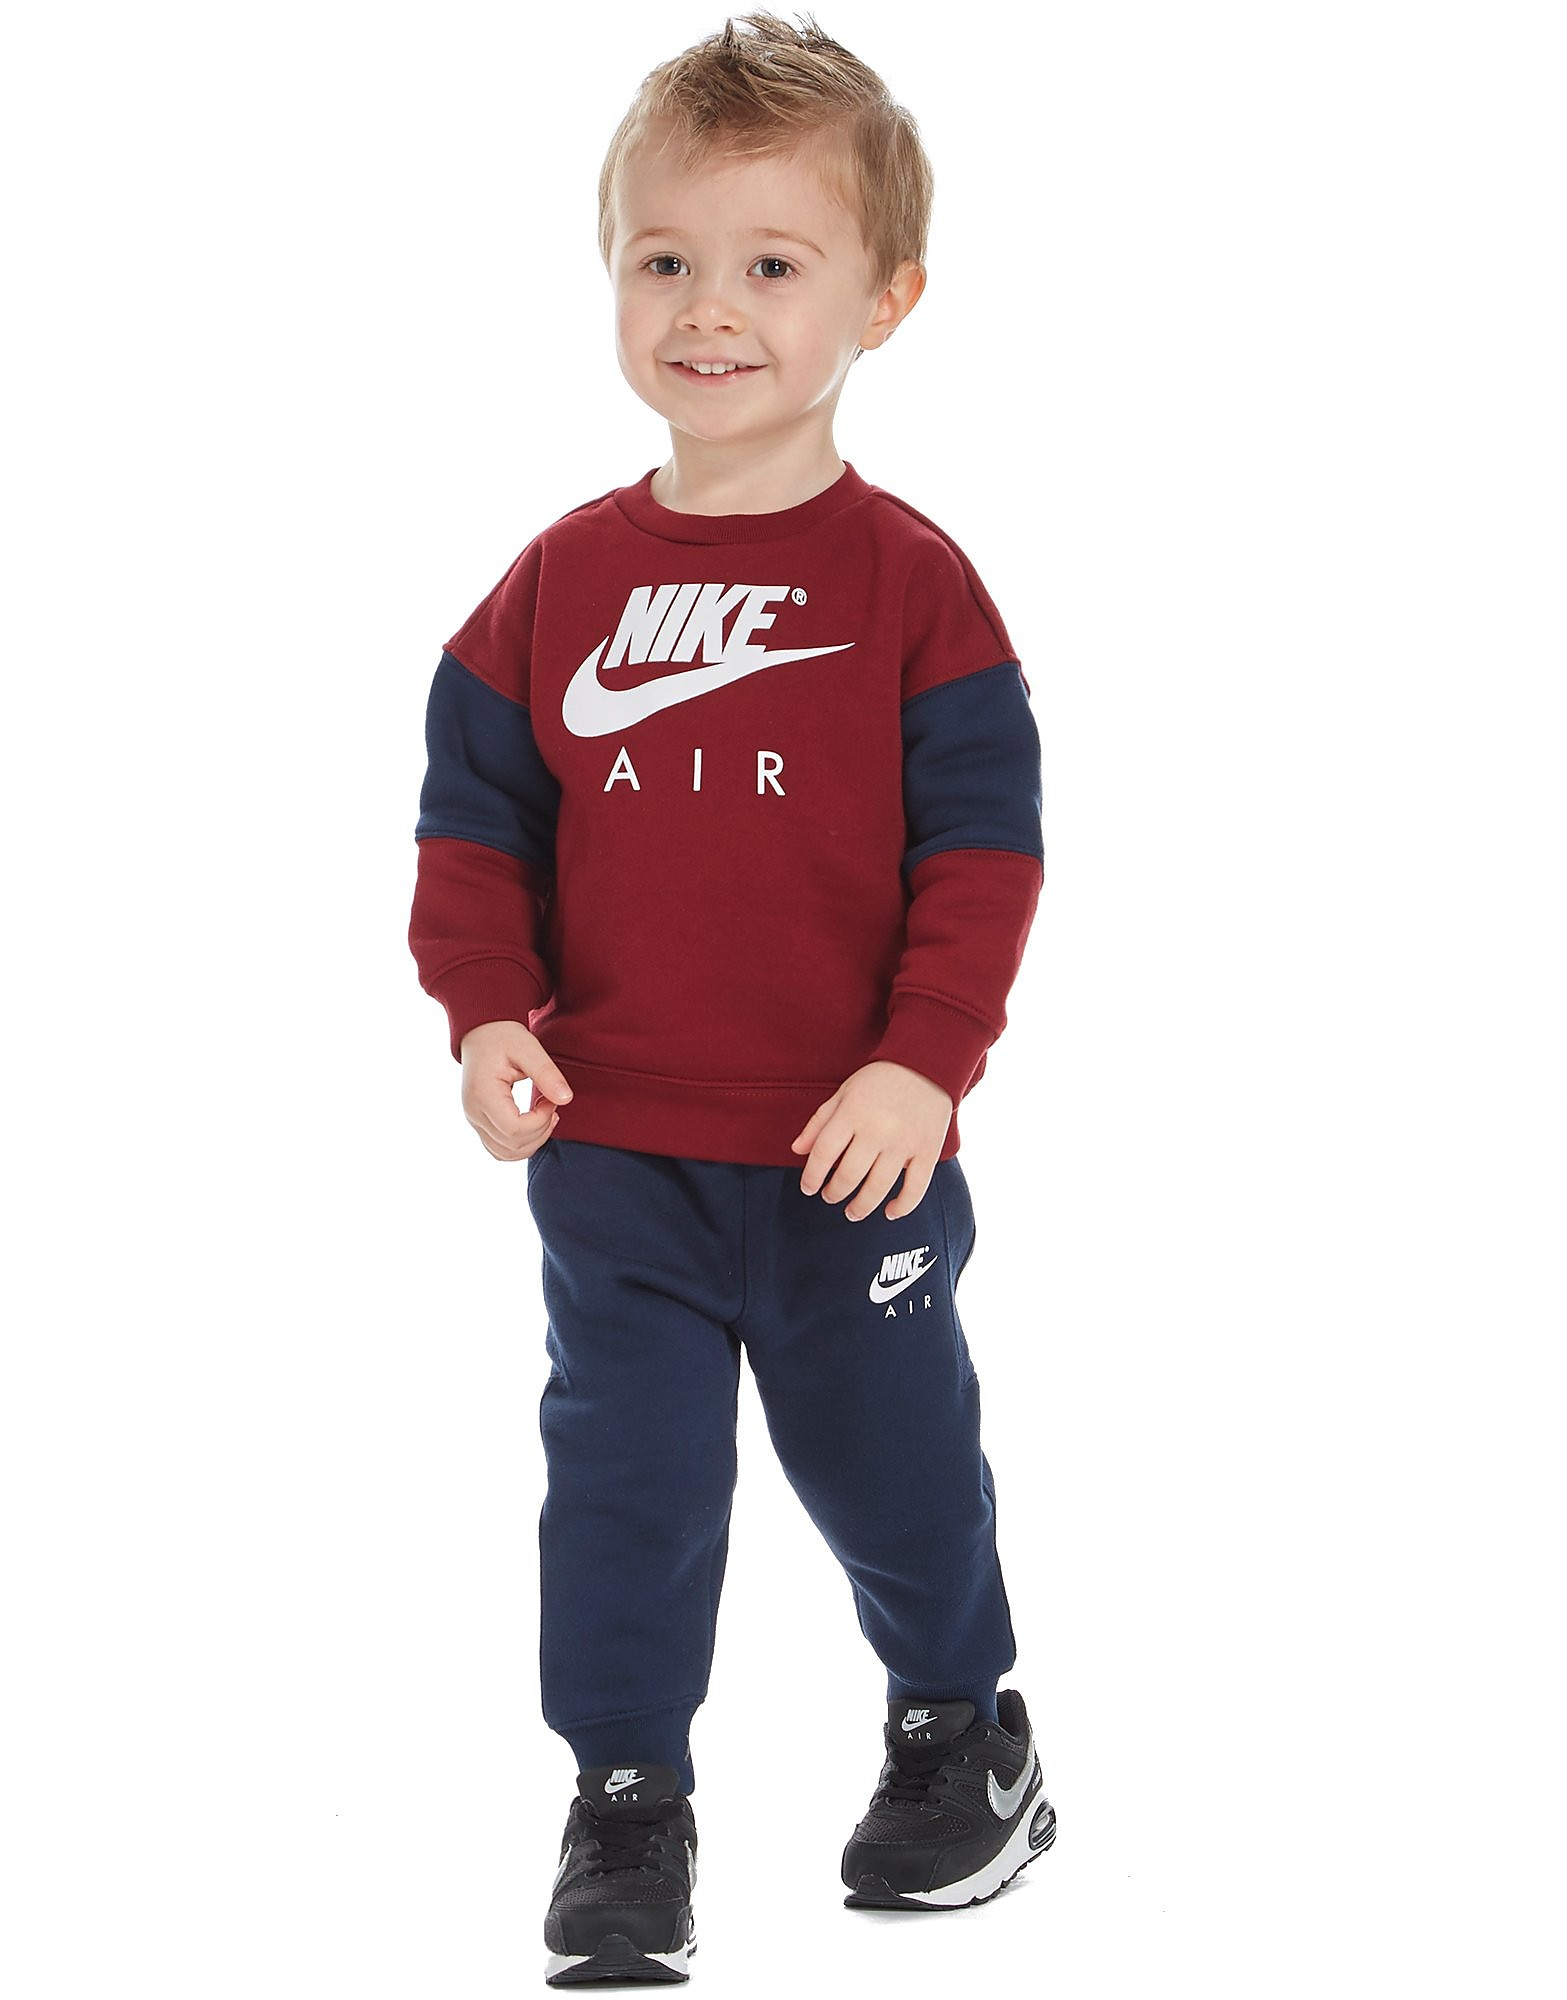 Nike Air Crew Suit Bebè